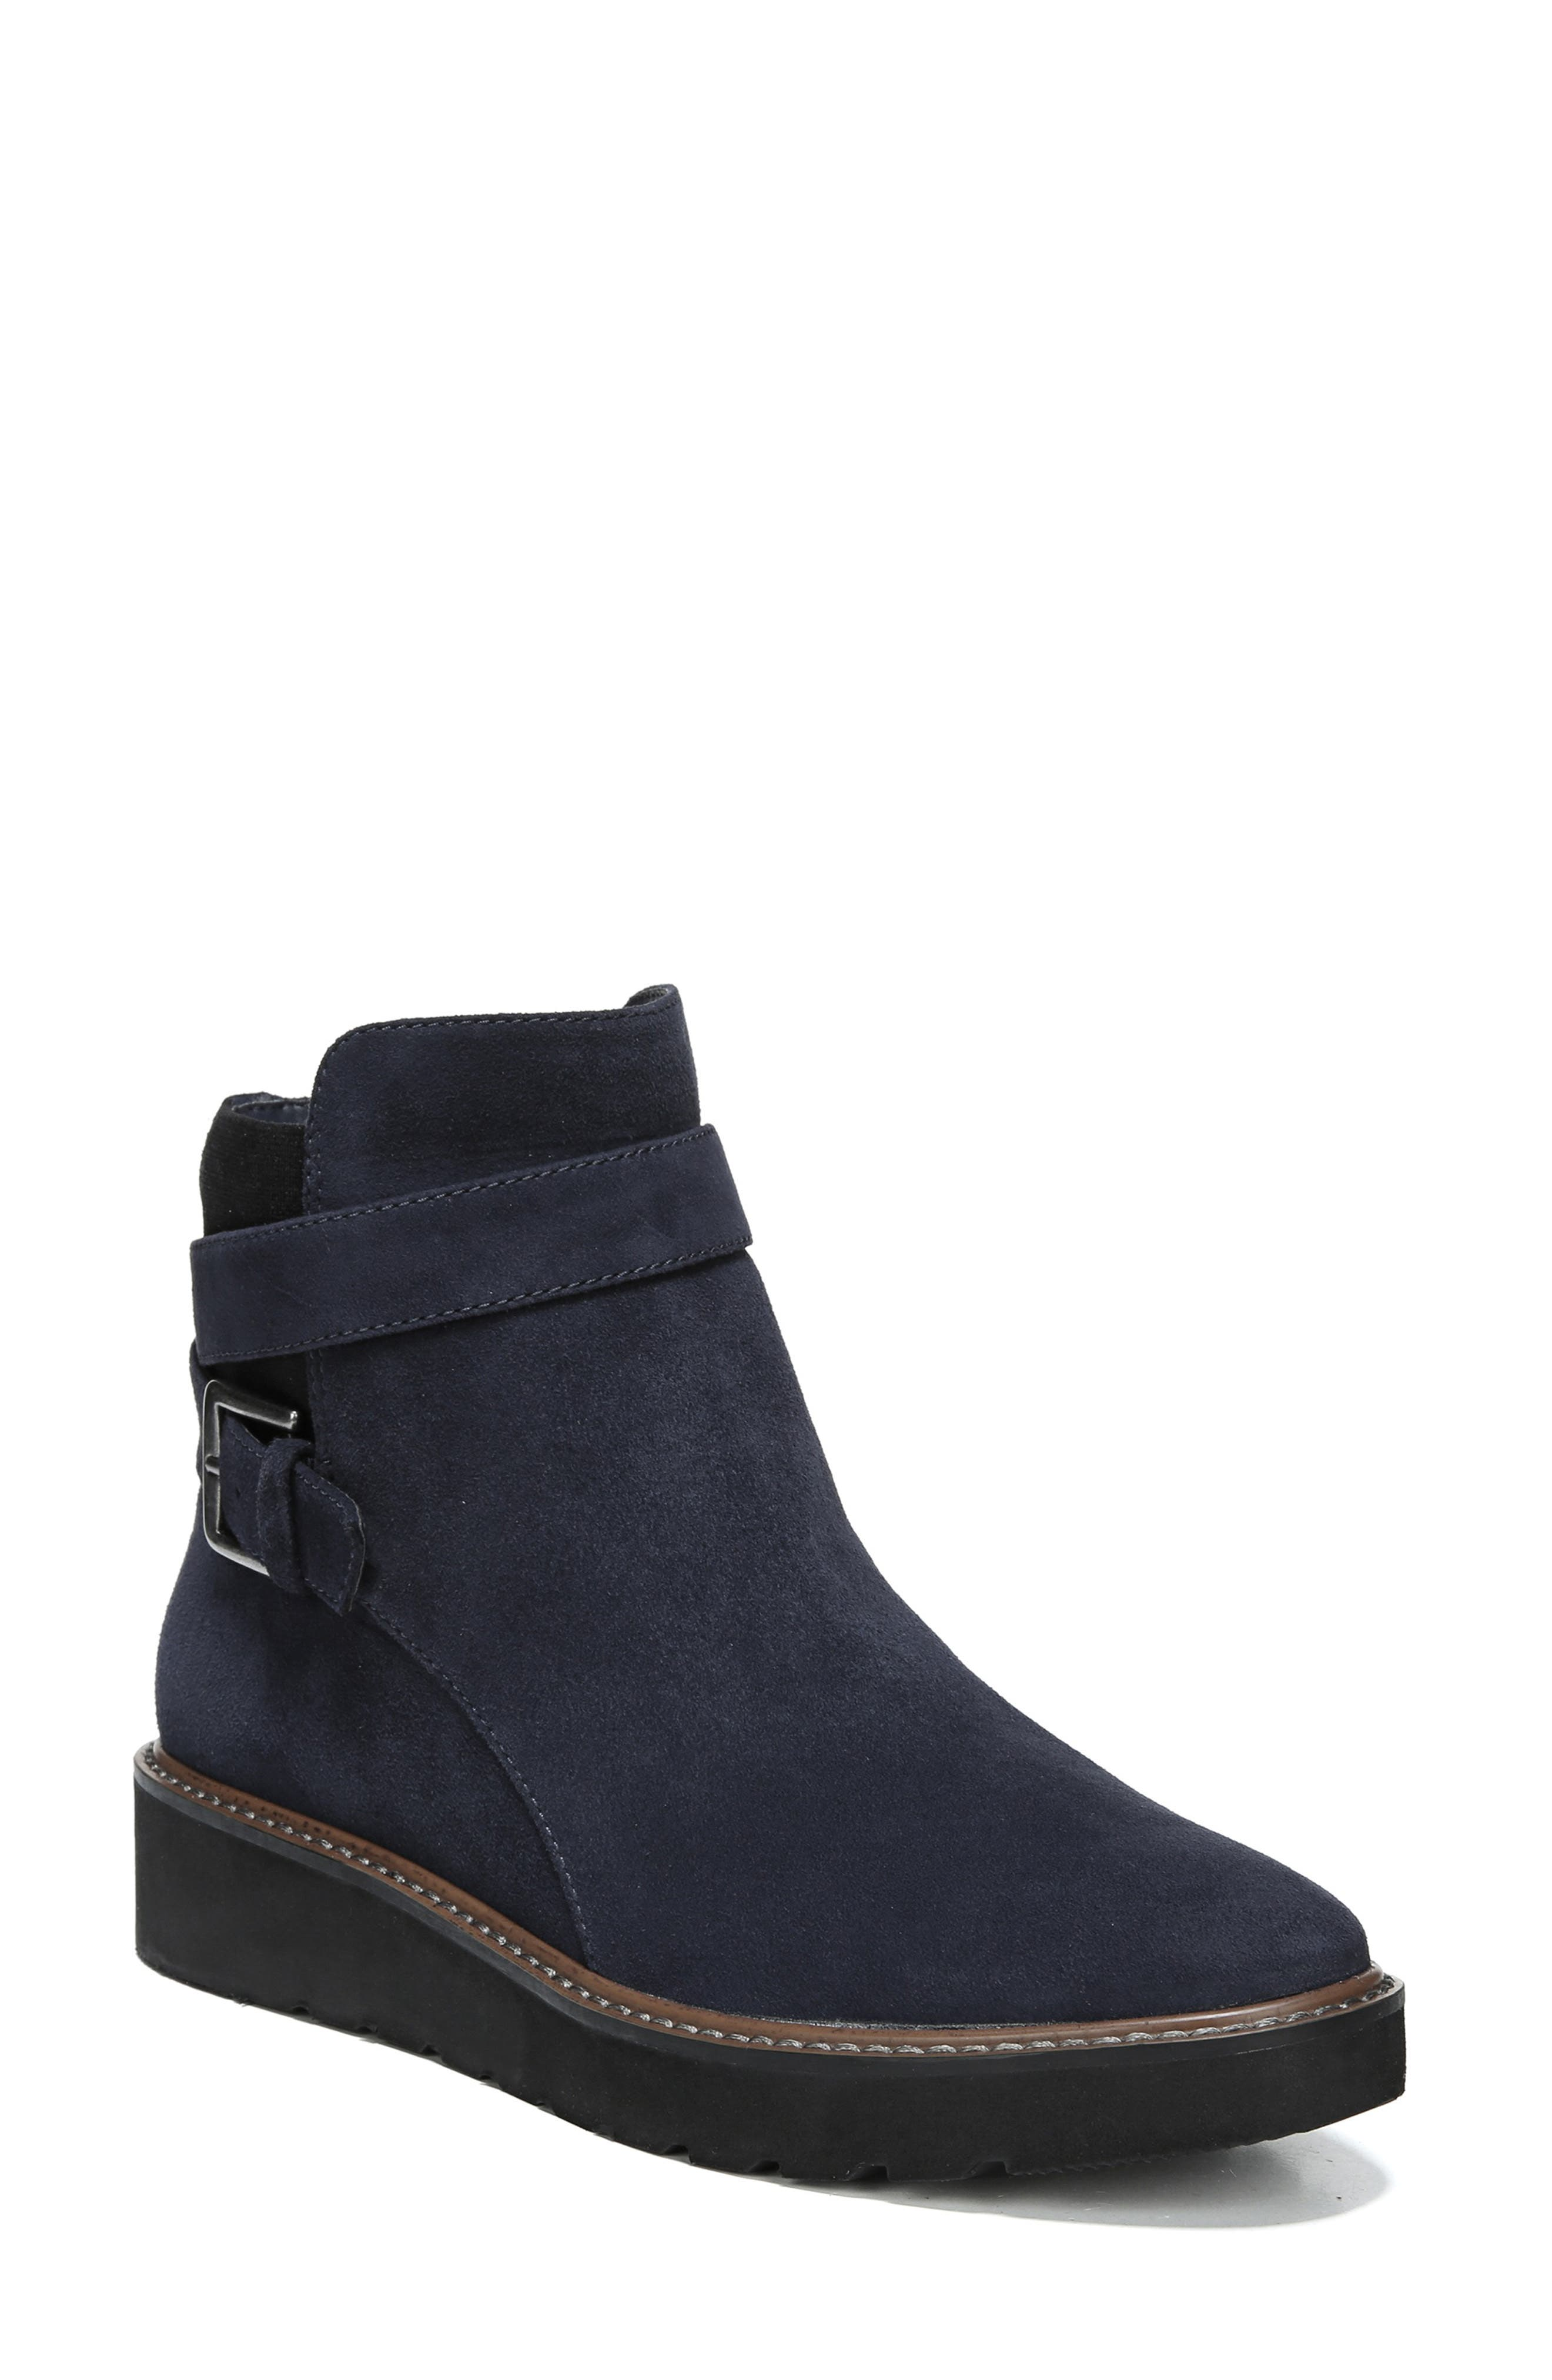 Naturalizer Aster Bootie W - Blue